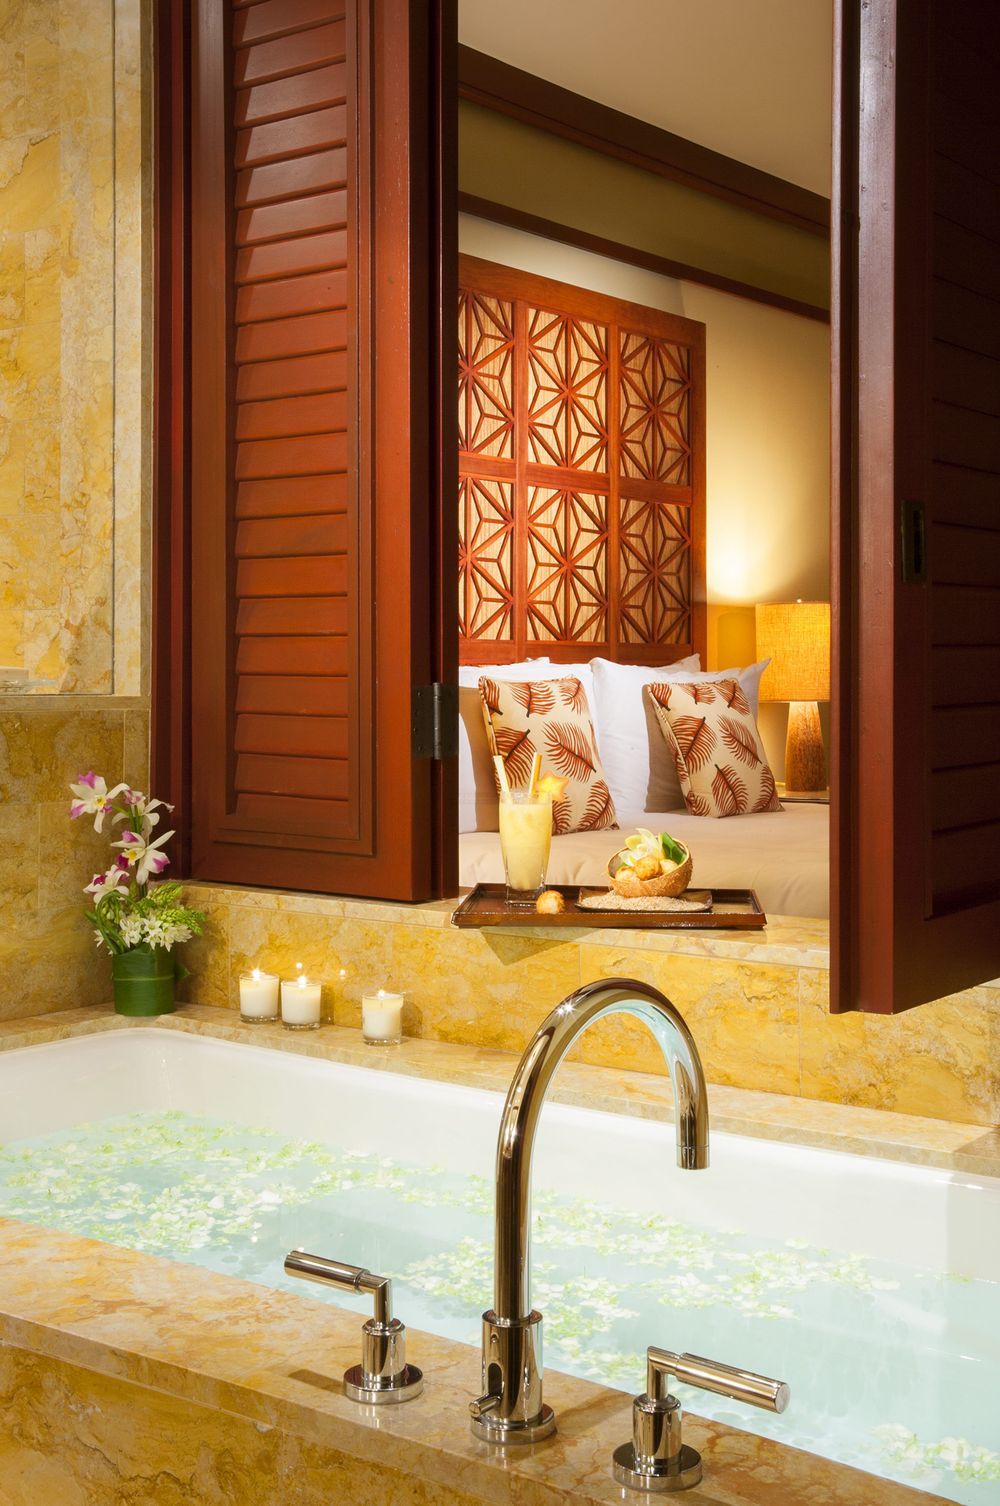 John-Sutton-Photography-Four Seasons Resort Guest Bath